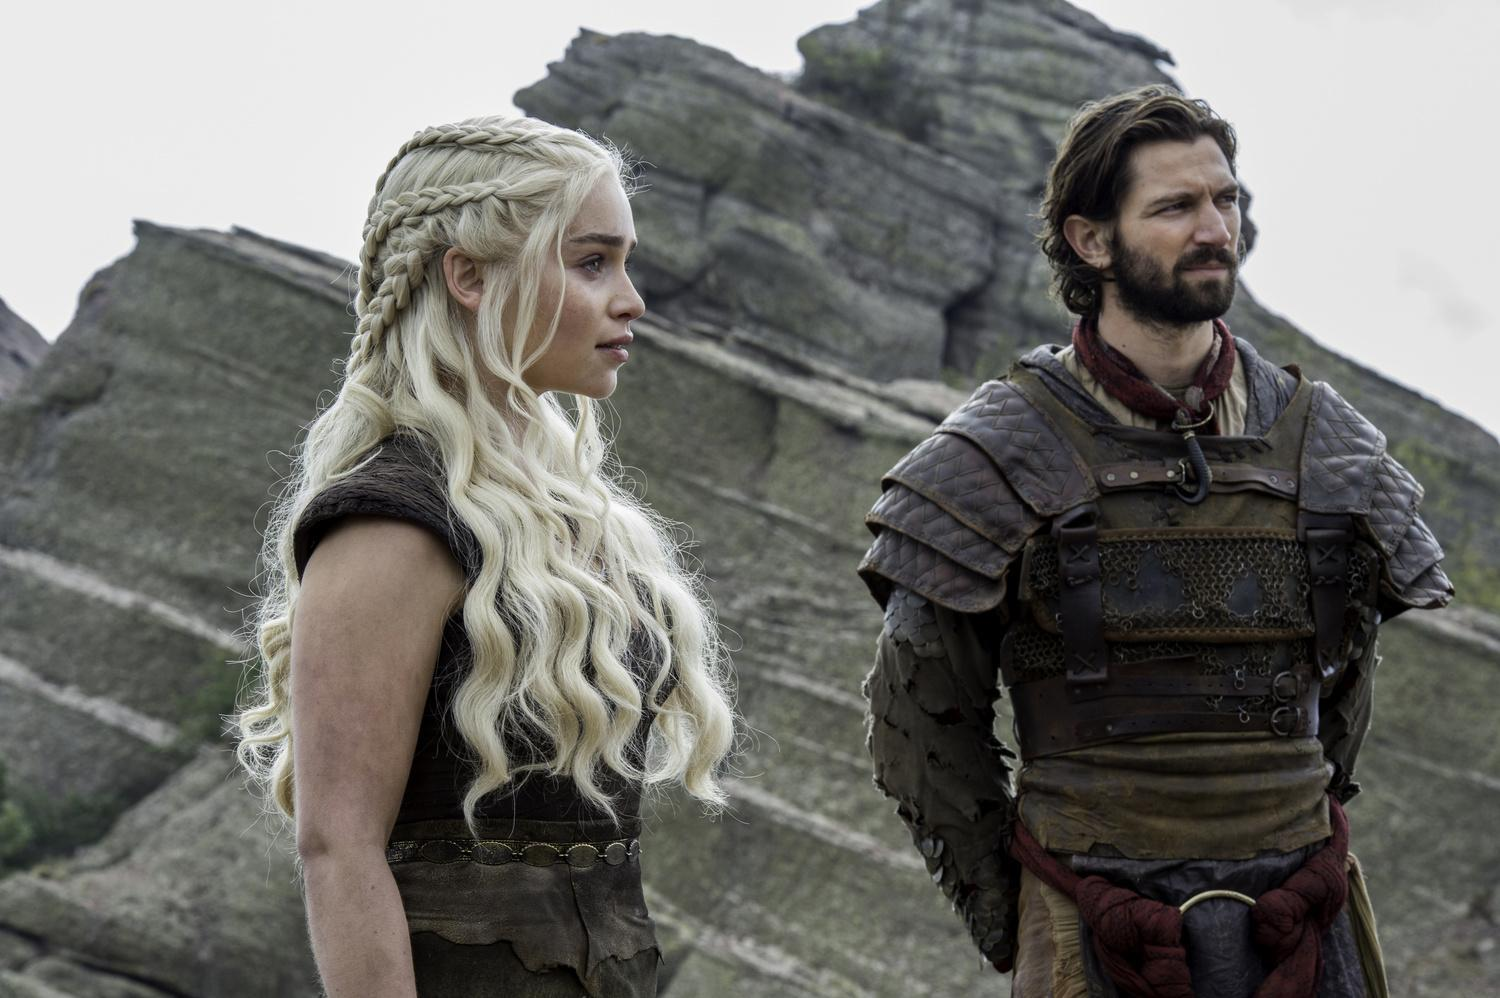 [Updated!] New photos from Game of Thrones Season 6 ... Daario Naharis Daenerys